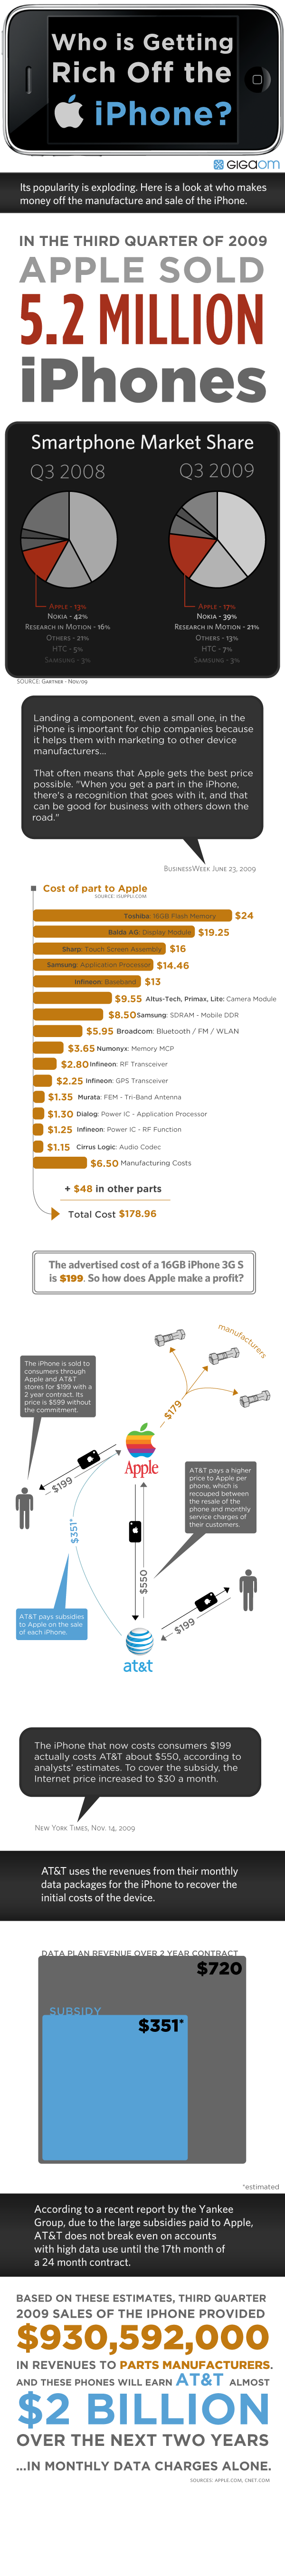 So Just Where Does All That iPhone Money Go?